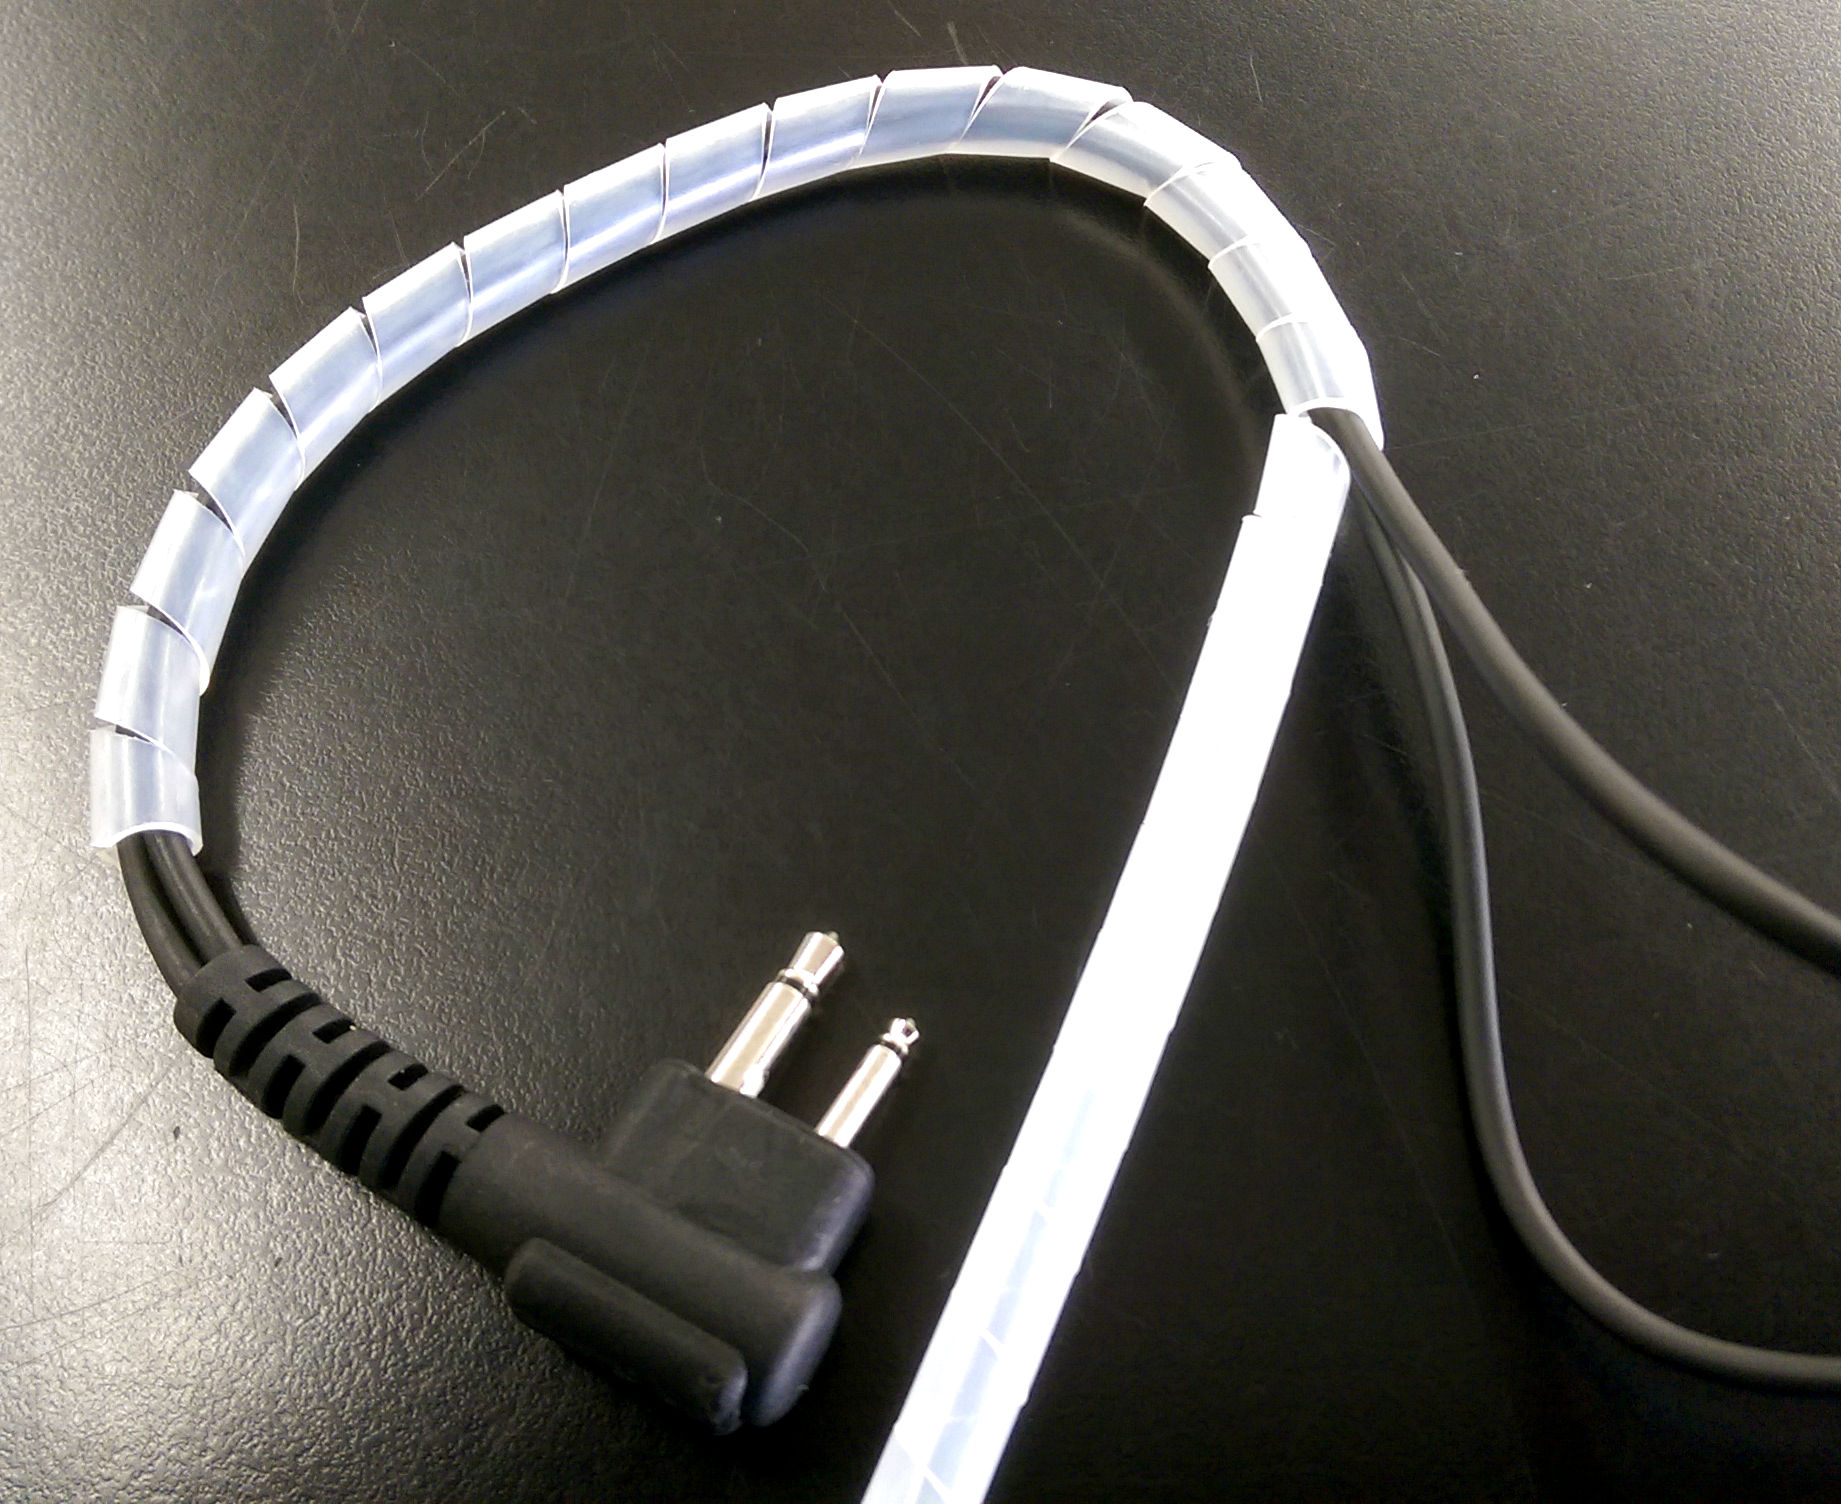 hight resolution of surveillance kit spiral cable wrap